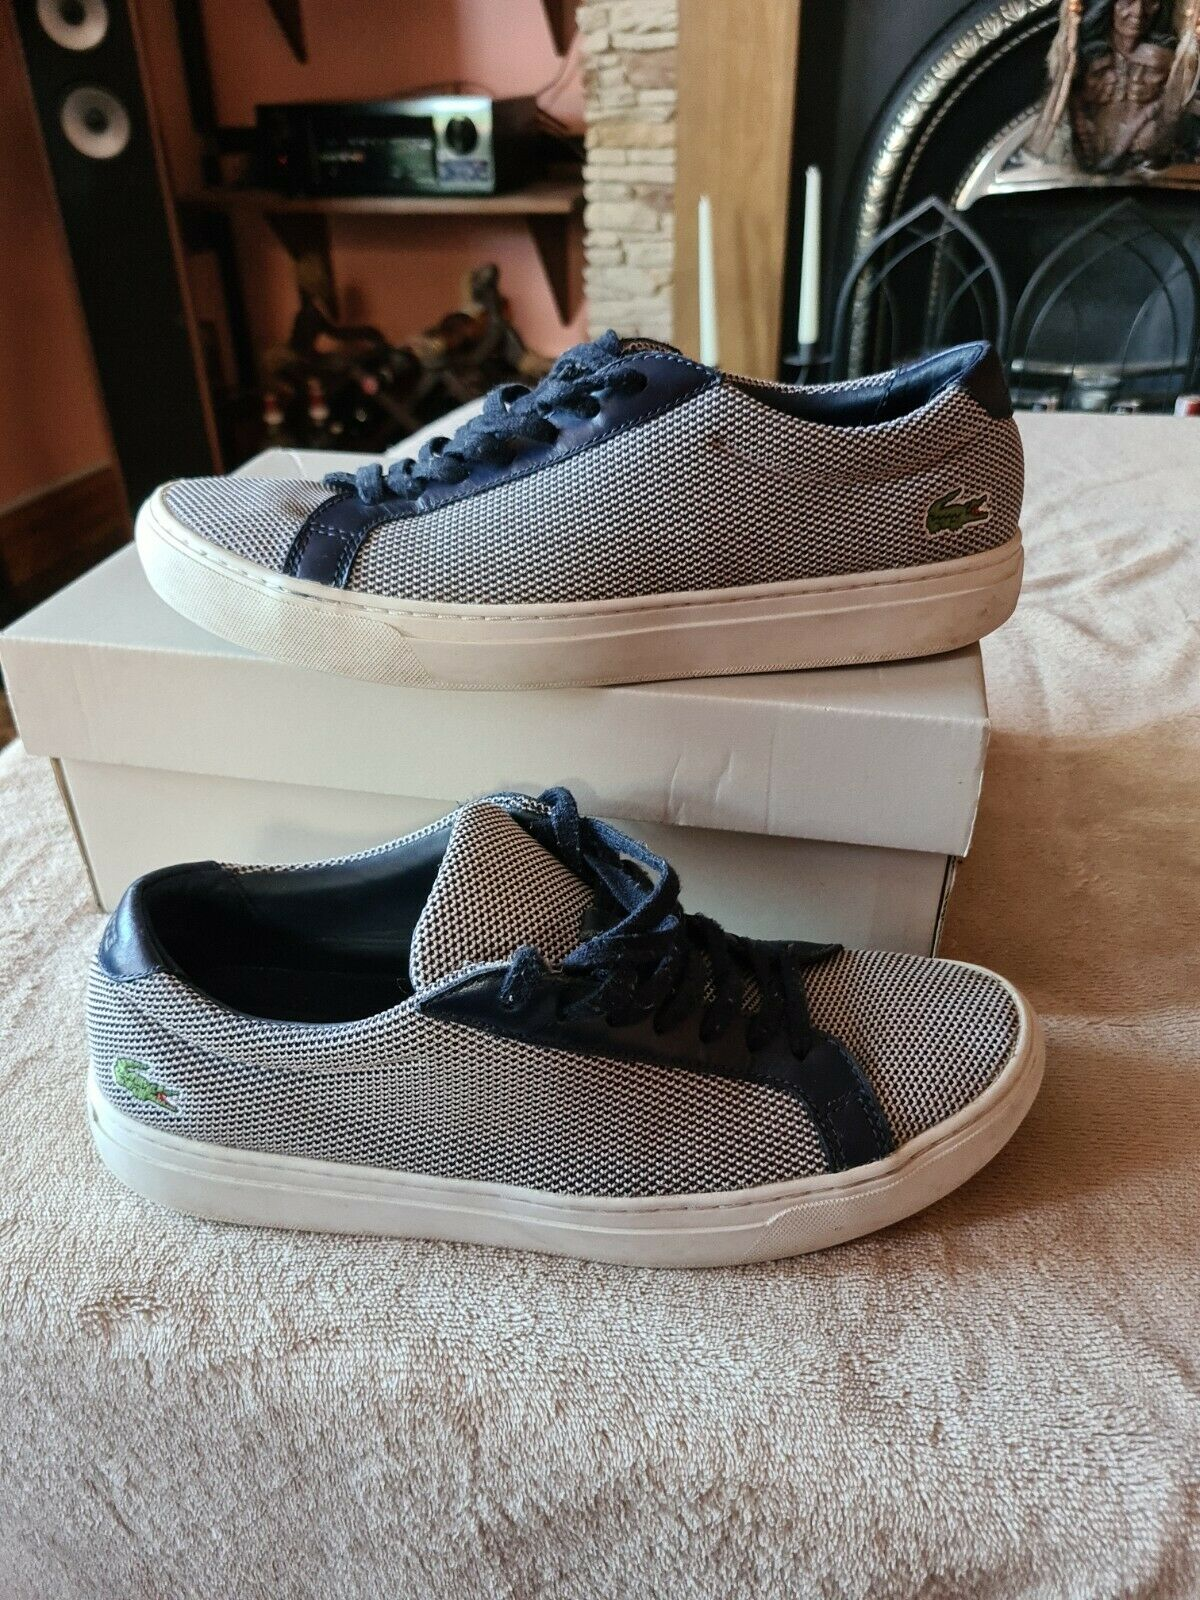 Lacoste Mens Trainers Size Uk 8 Very Good Condition